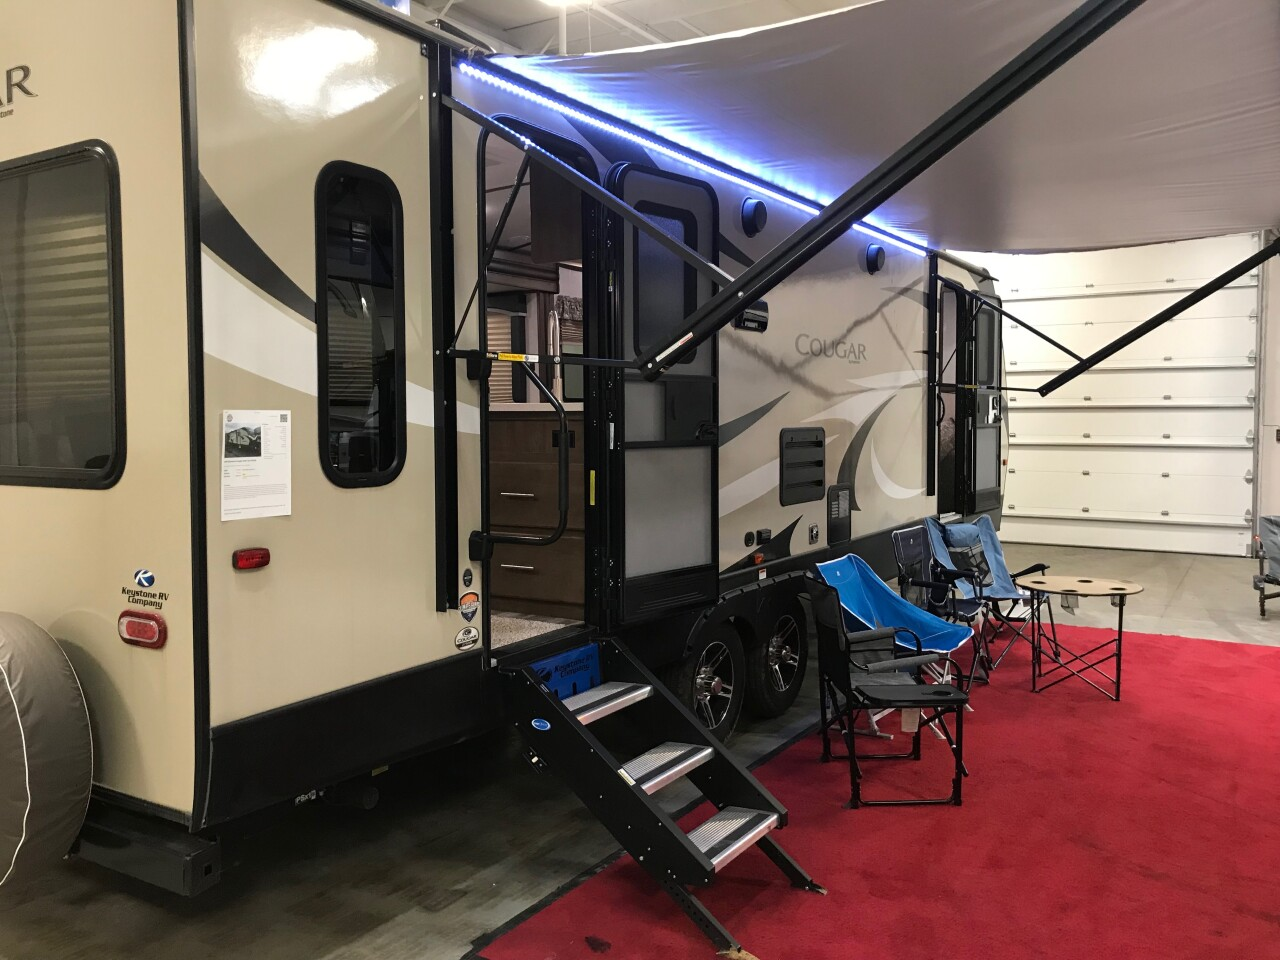 Camper at Colerain Family RV